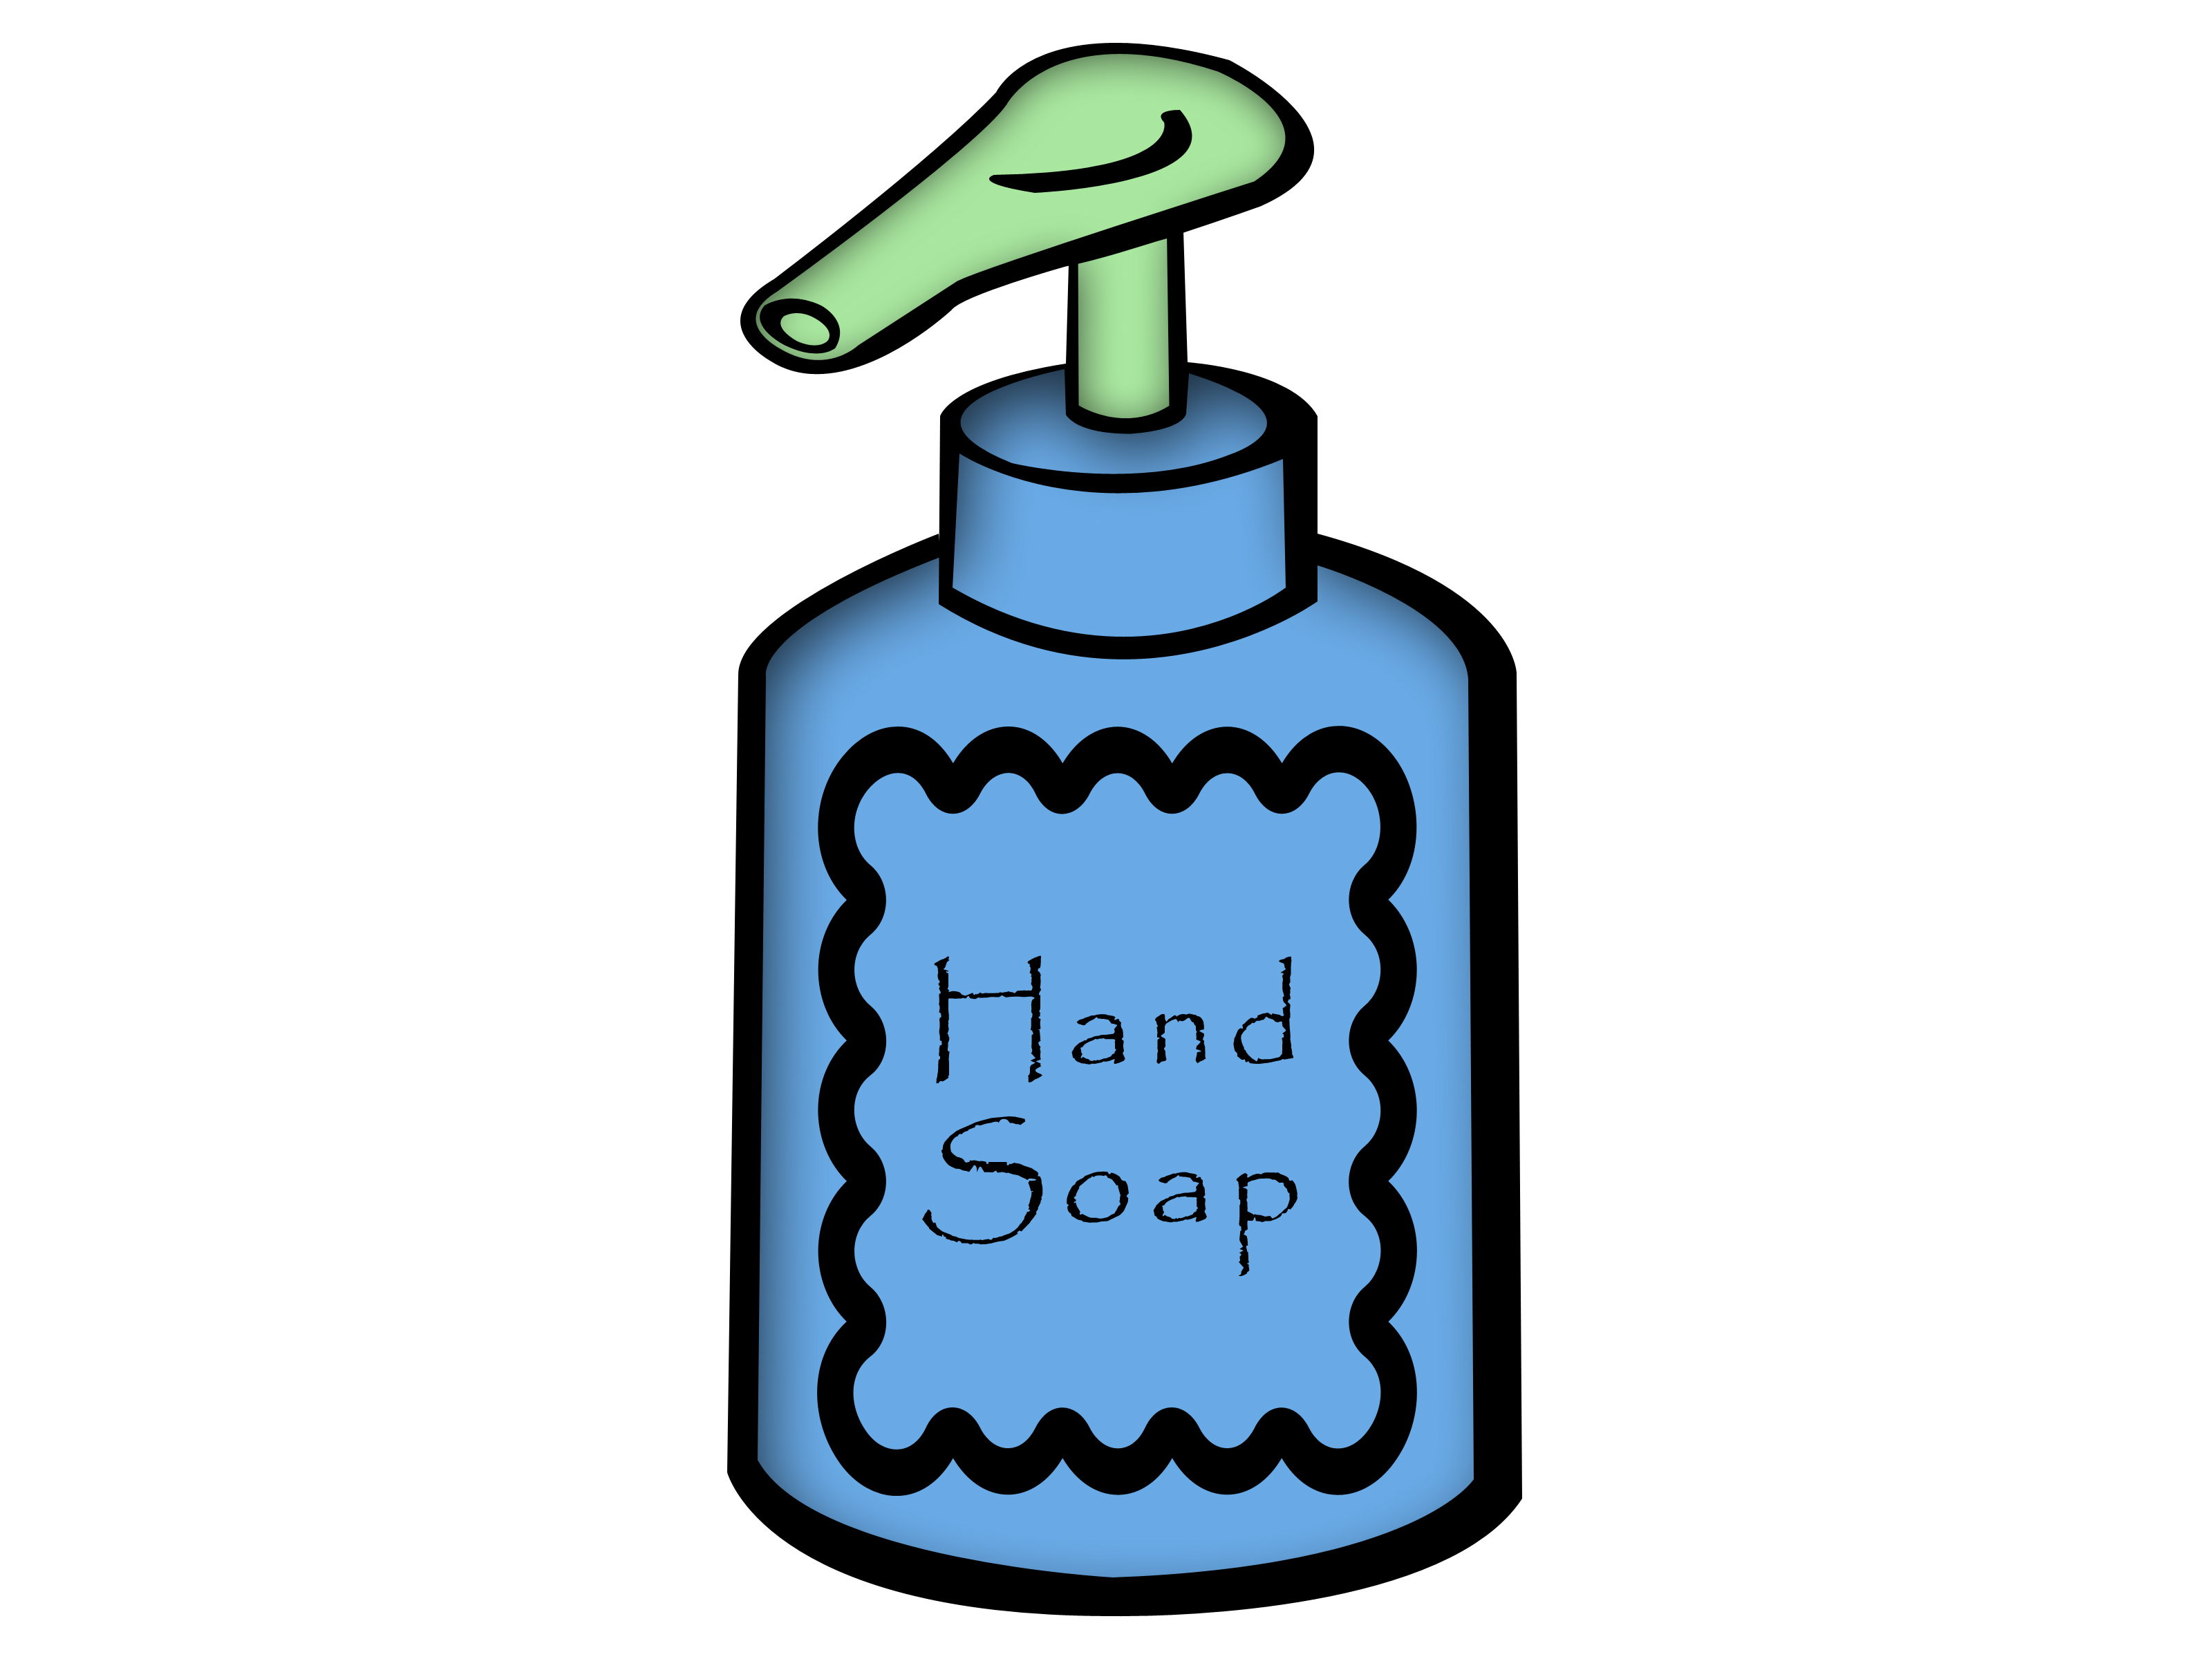 wash hands drawing at getdrawings com free for personal use wash rh getdrawings com wash hands clipart free wash hands clipart free